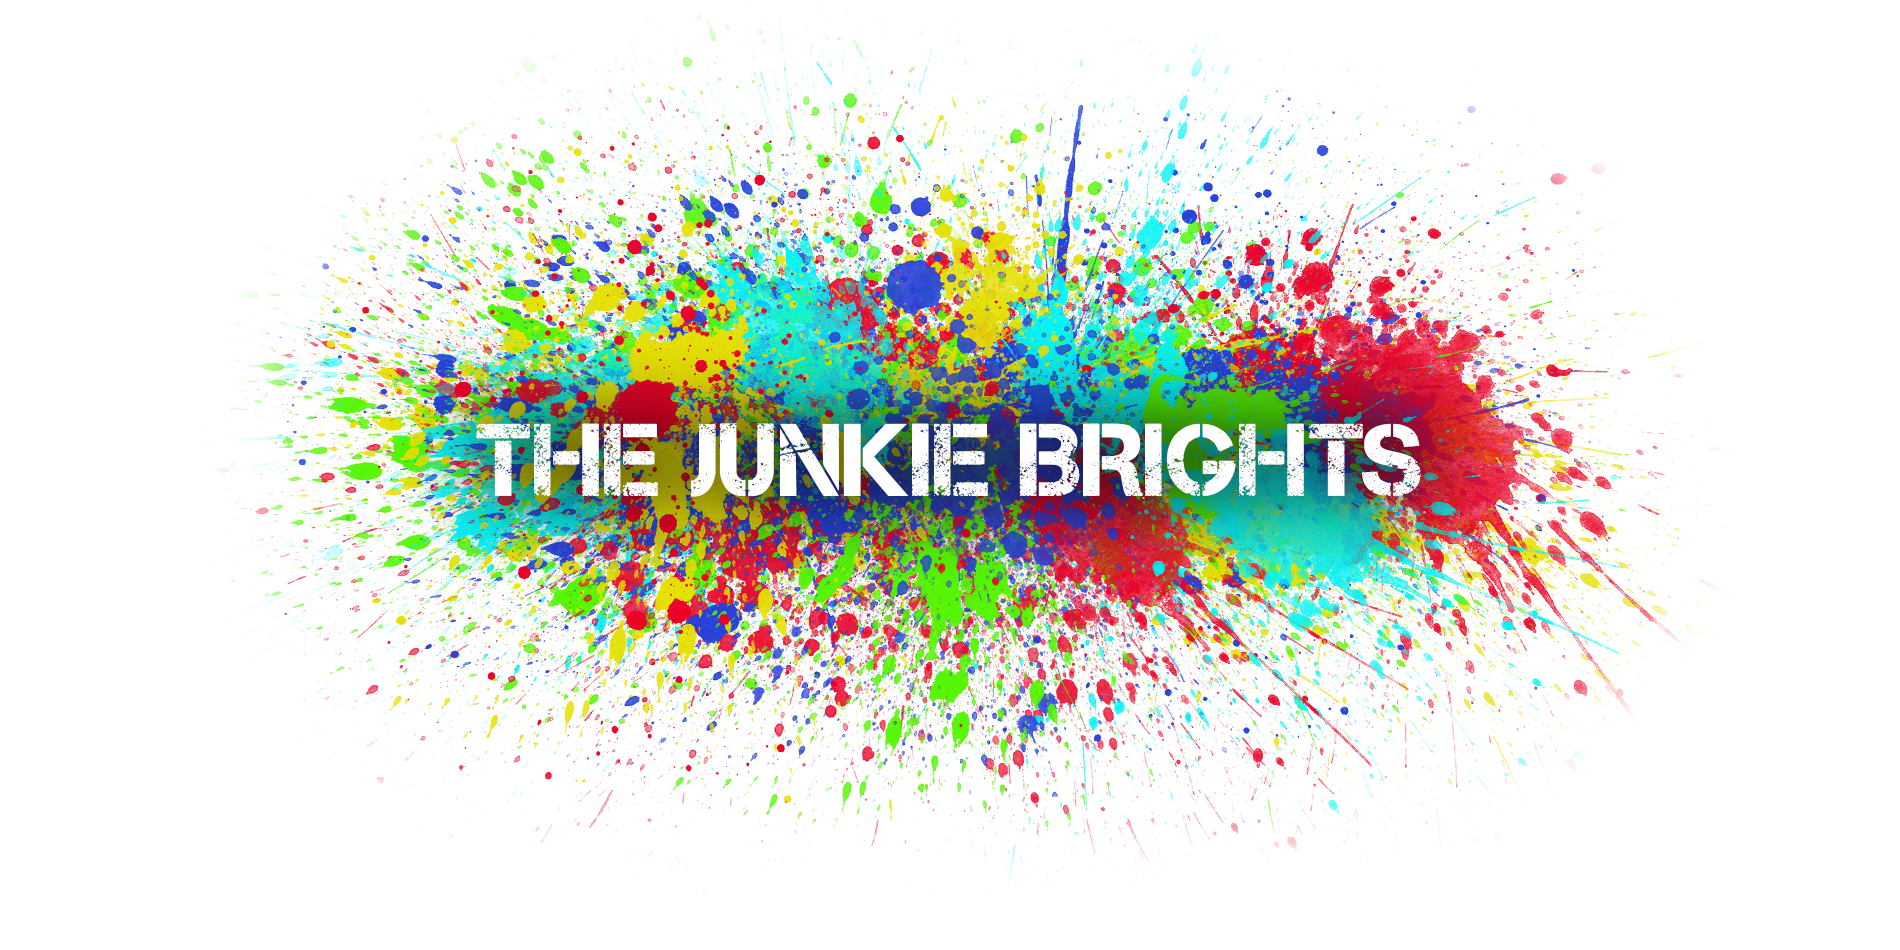 THE JUNKIE BRIGHTS